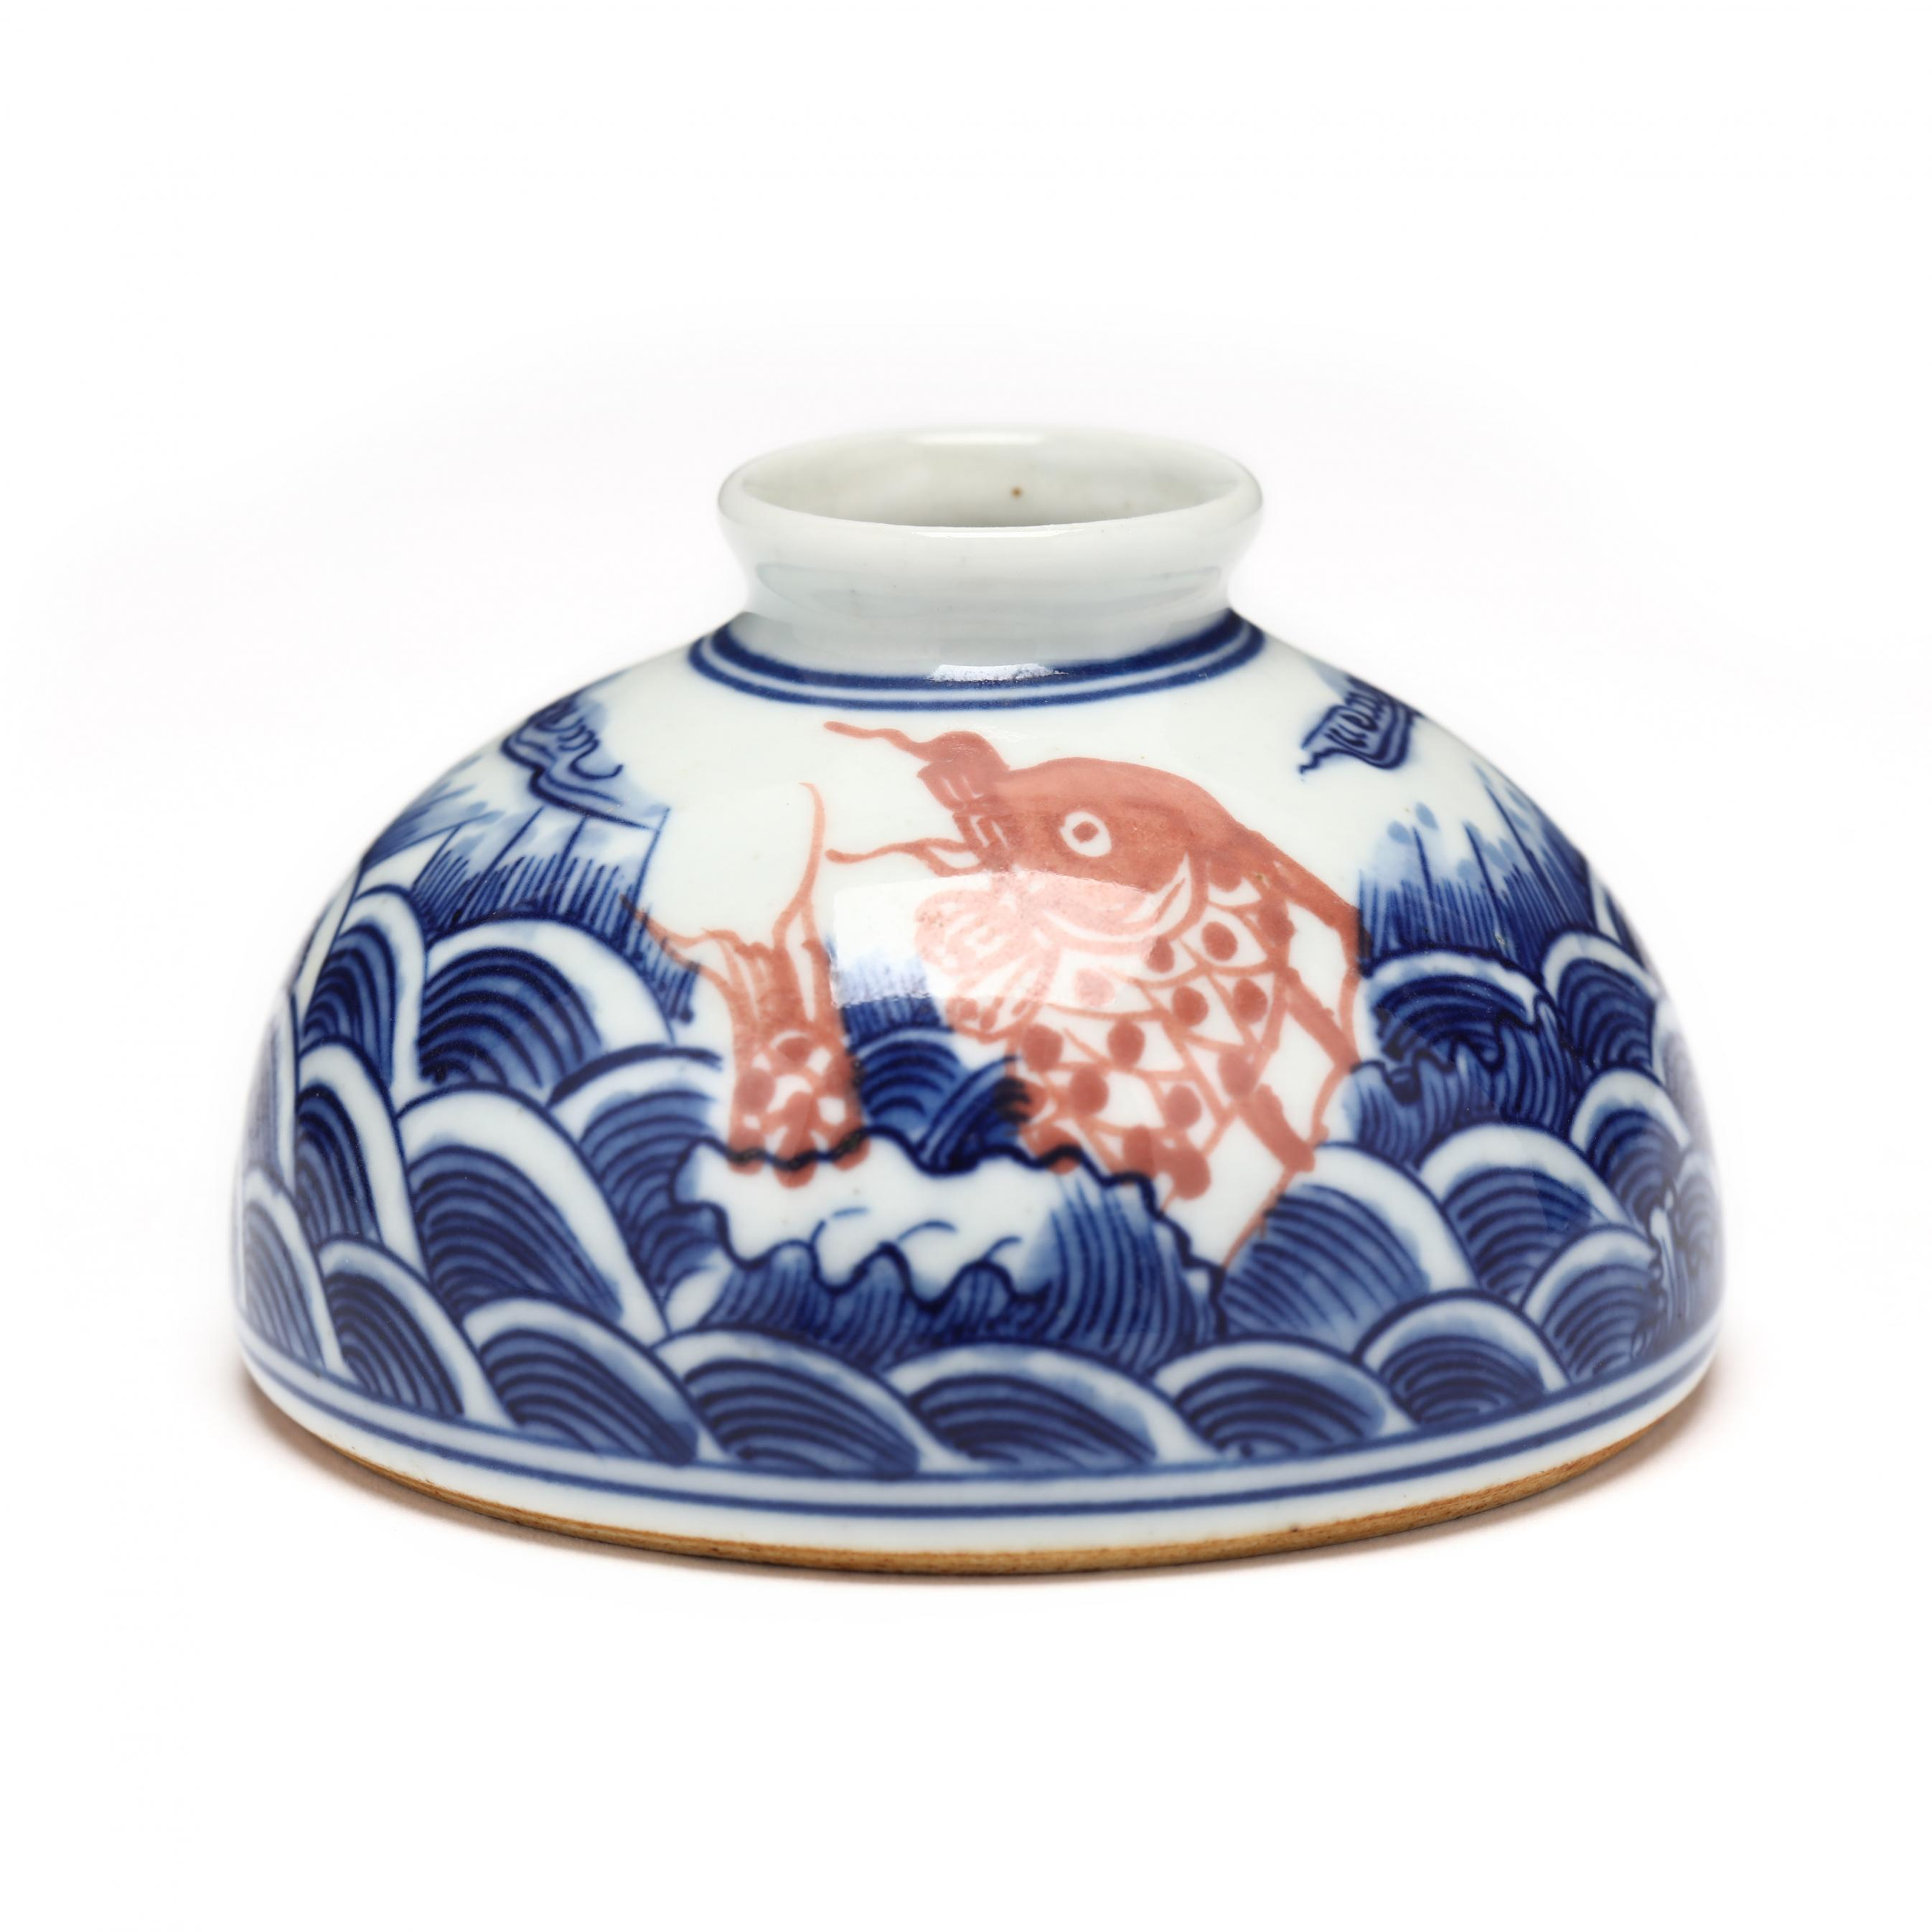 a-chinese-i-ducai-i-porcelain-water-pot